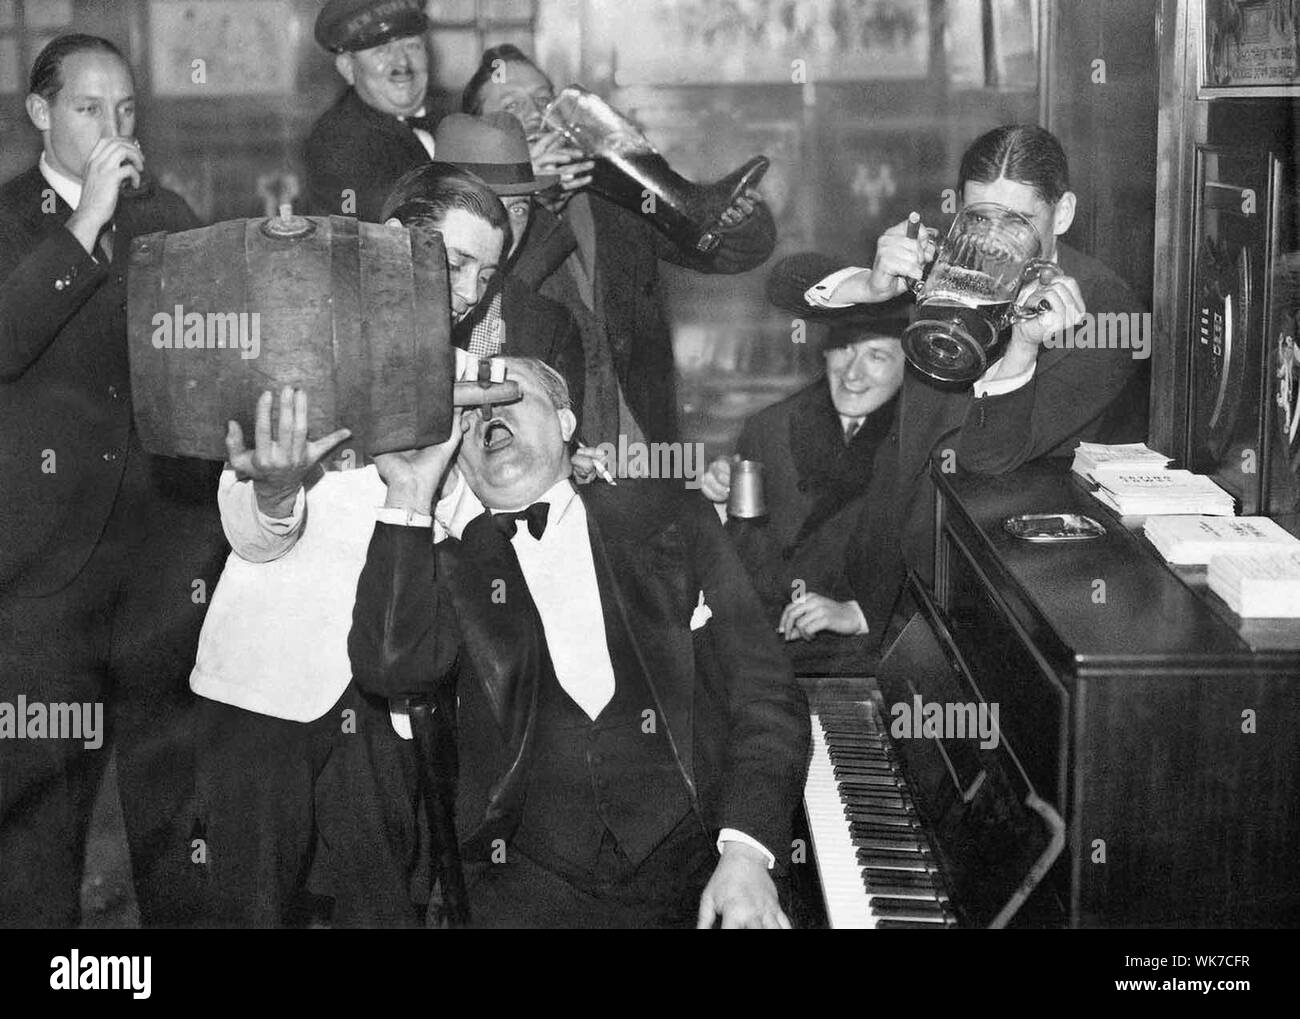 "Americans visiting Paris celebrated the end of Prohibition in the United States in a ""real two-fisted manner,"" its original caption stated. - Stock Photo"